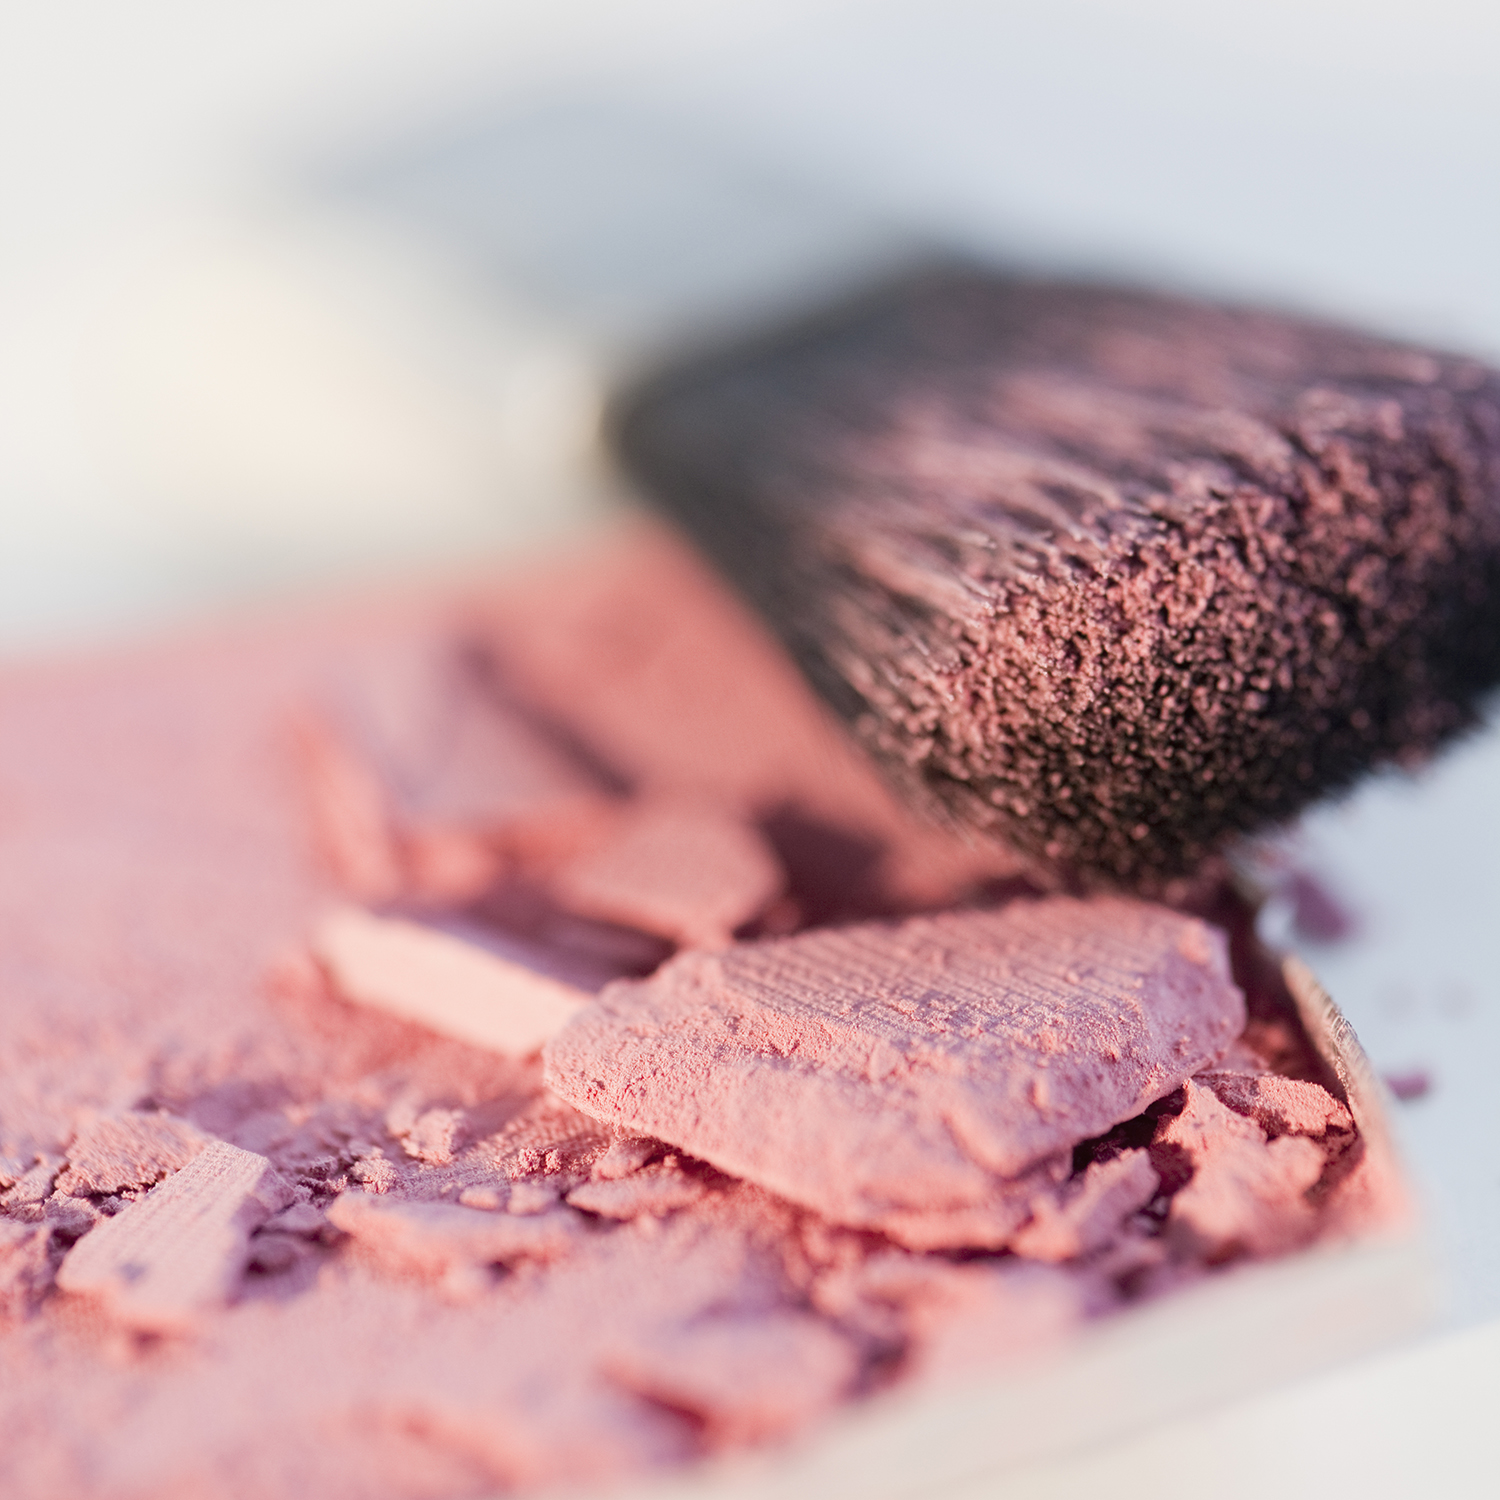 Closeup of pink blush makeup